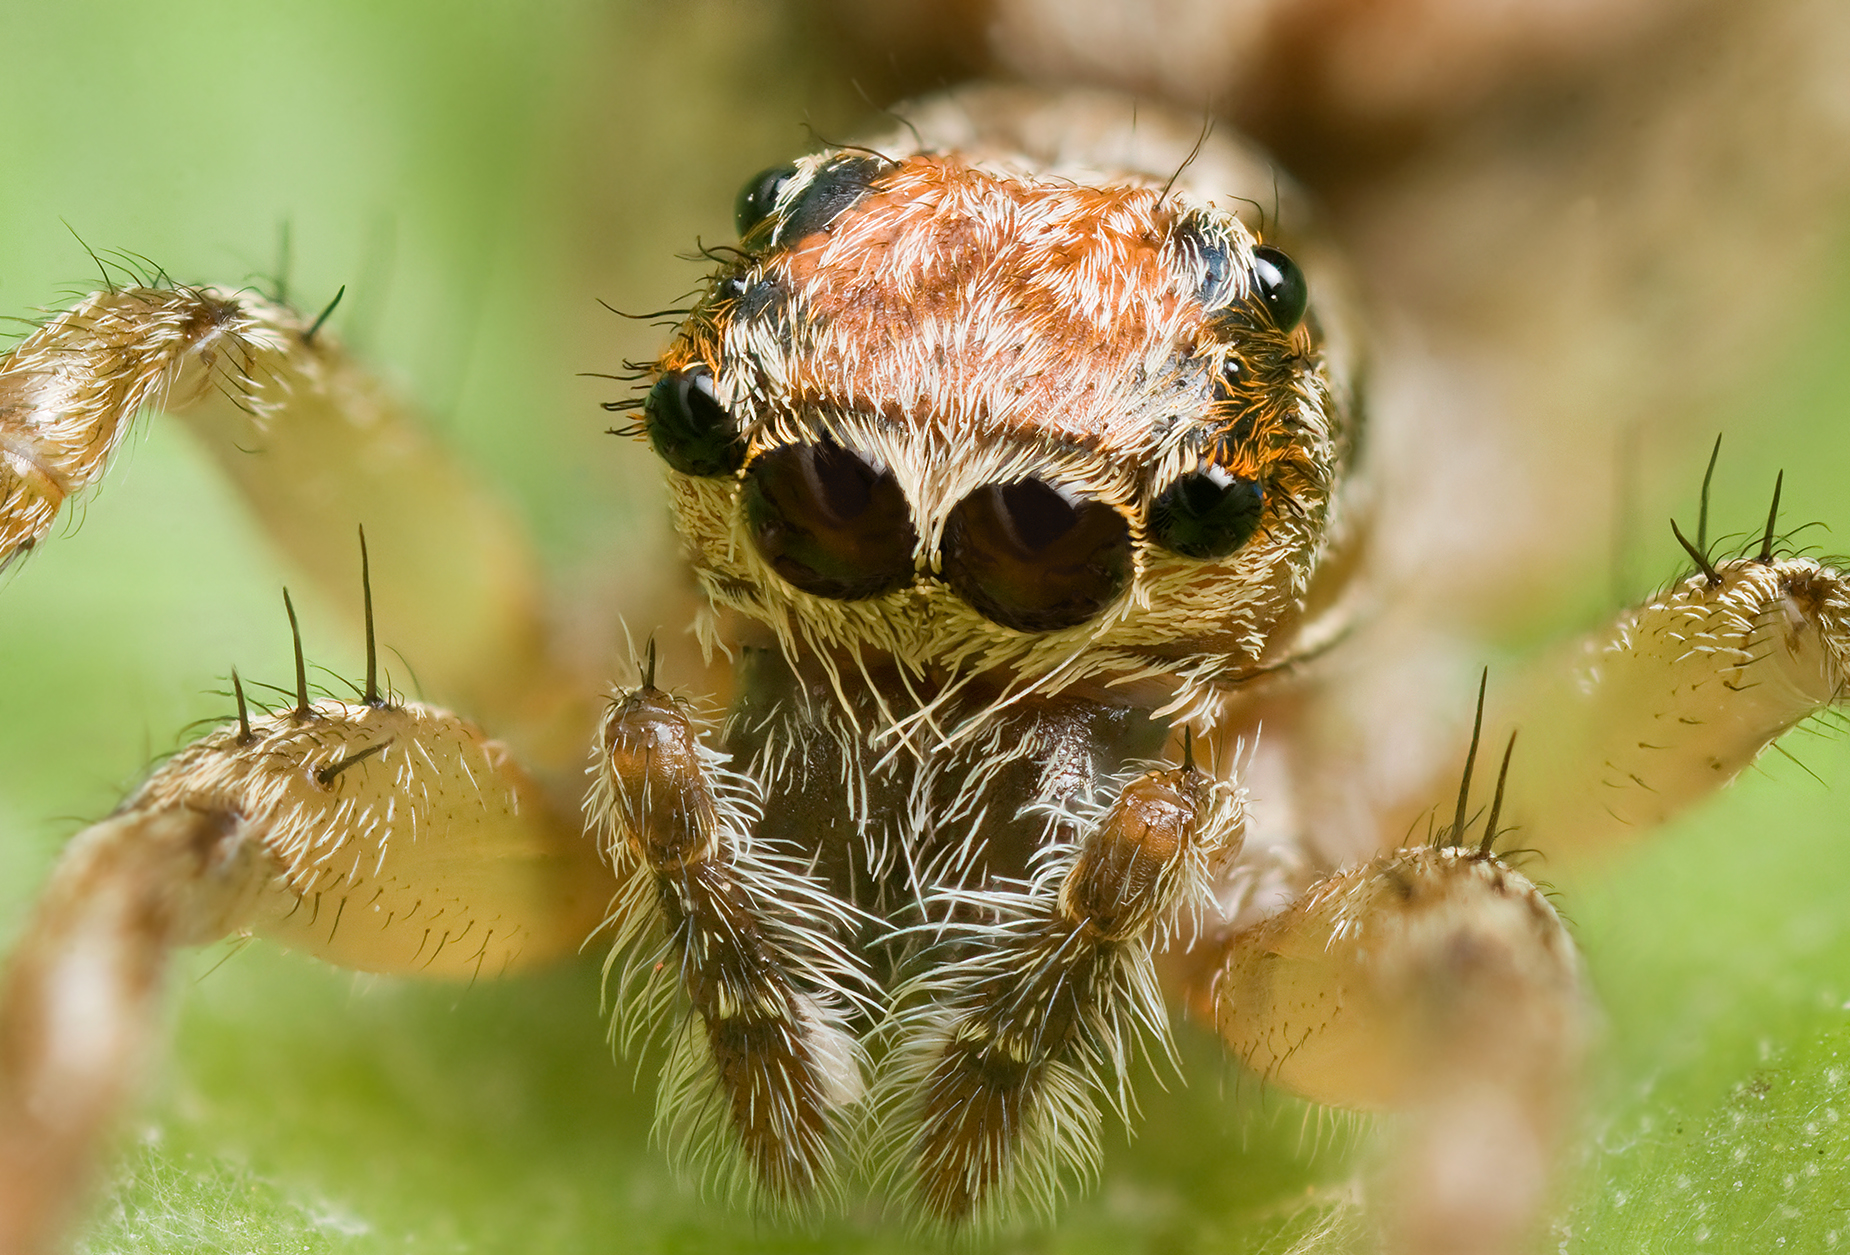 Spiders eat up to 800 million tons of insects and pests a year ...